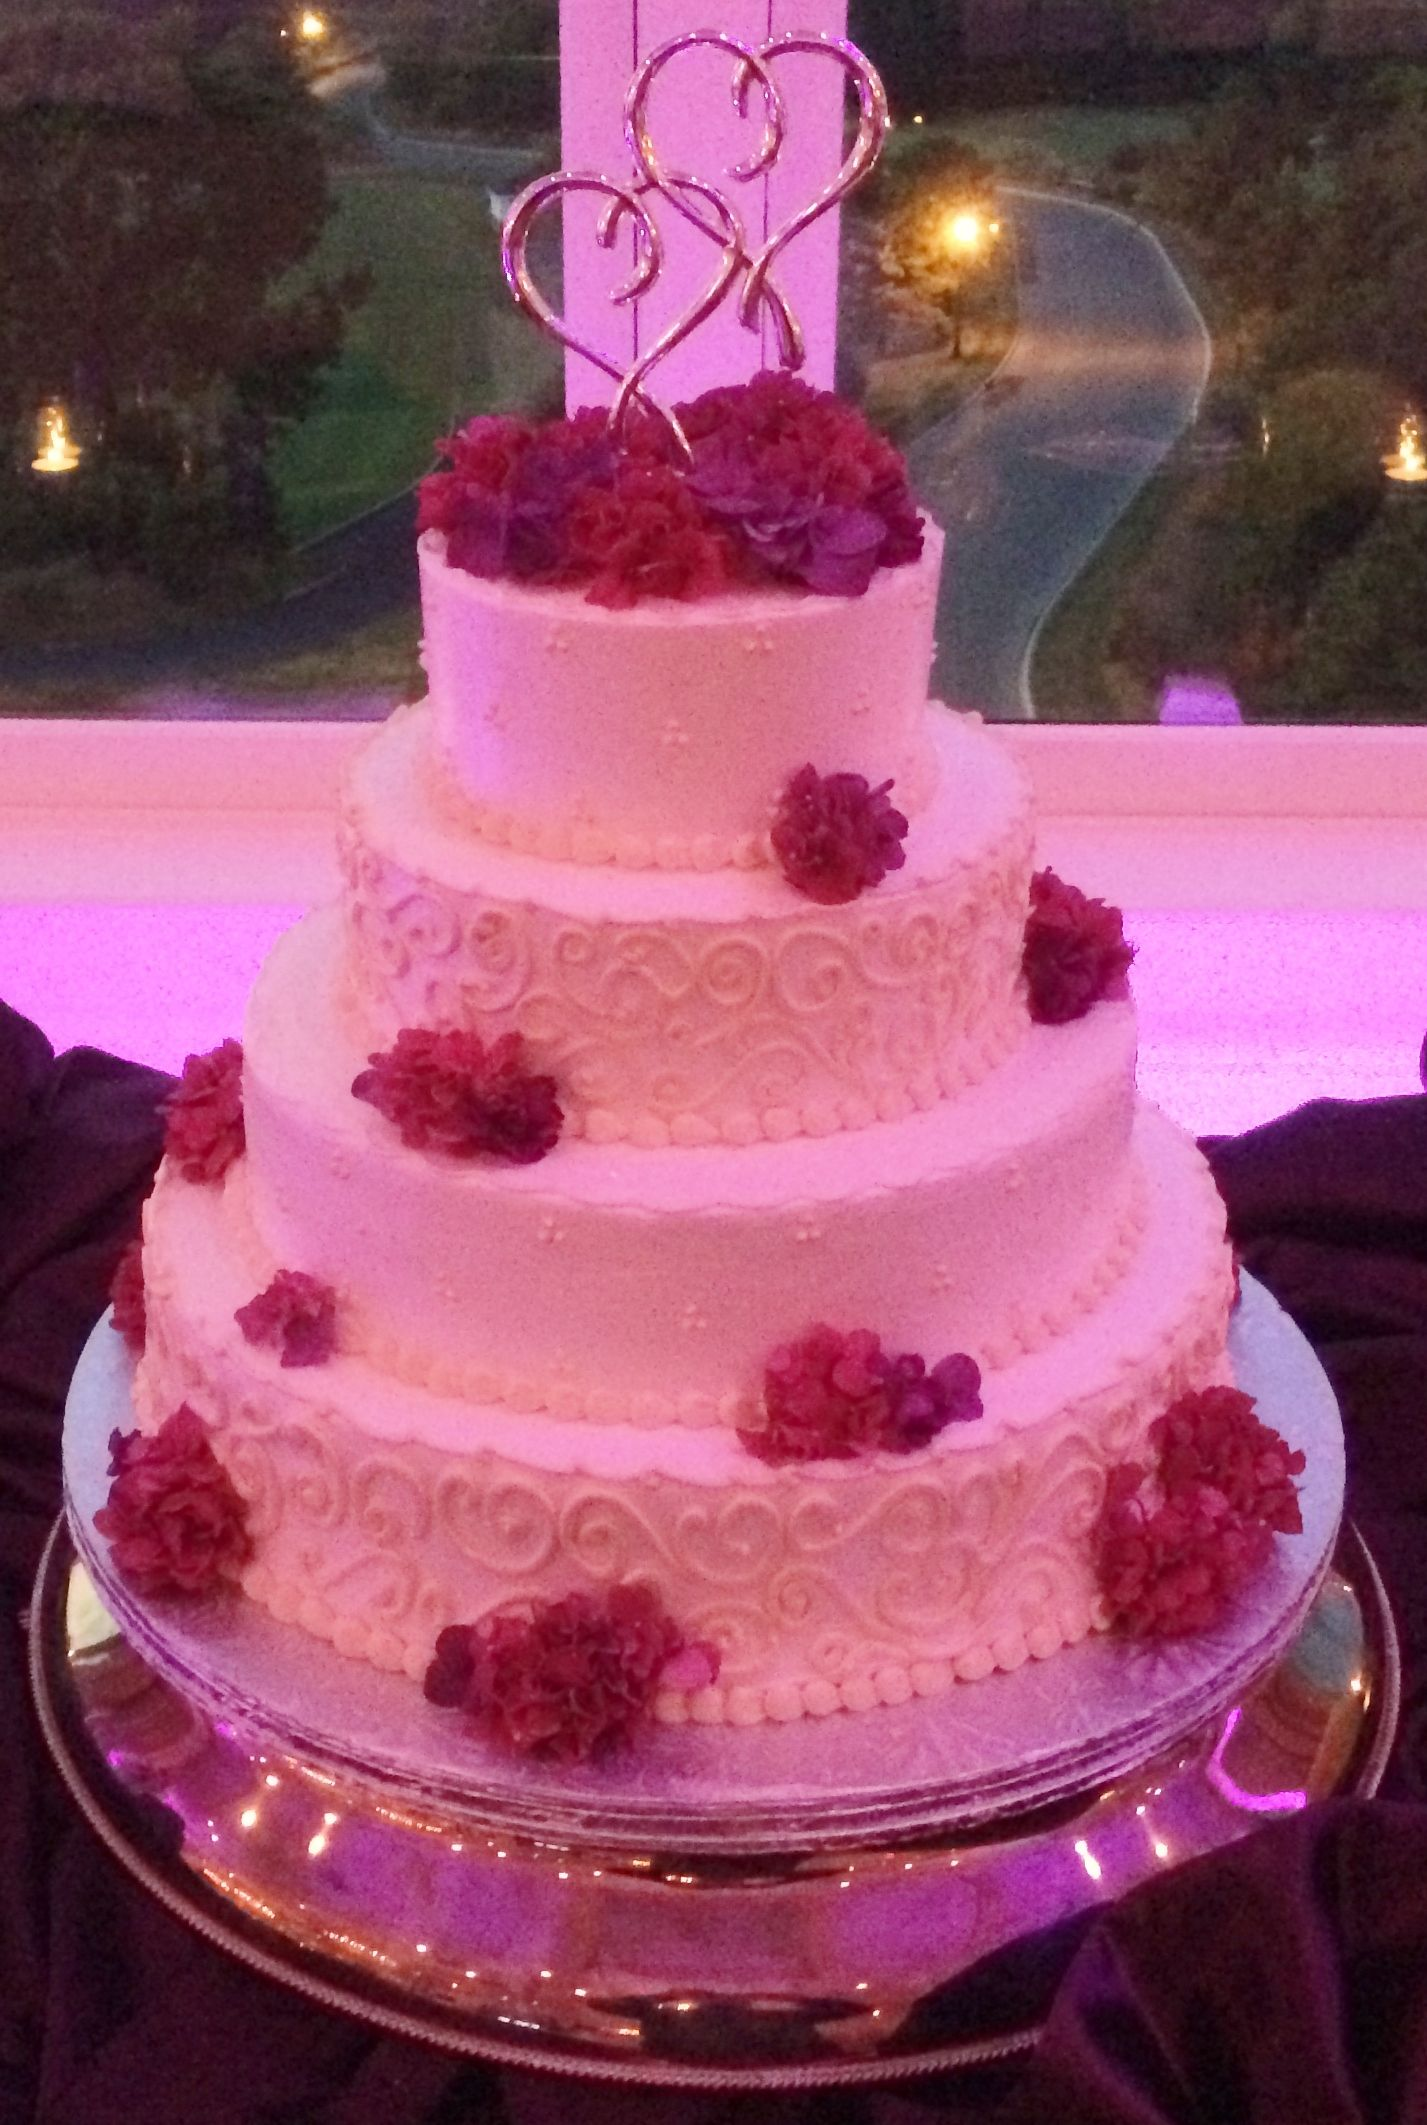 October 4, 2013 at the Trump National Philadelphia Golf Club in Pine Hill, NJ.  Congrats to Laura & Gilbert!